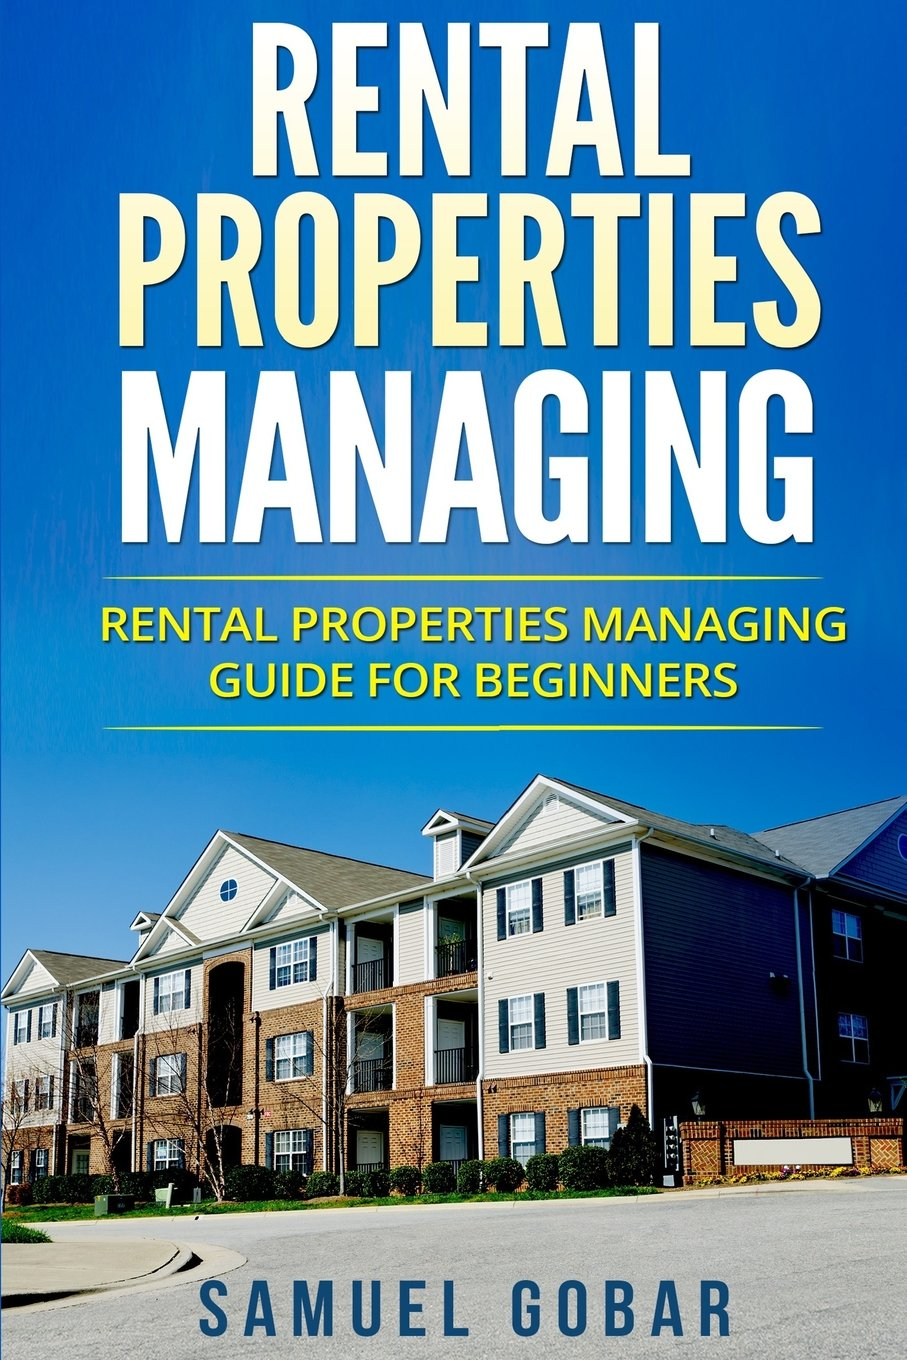 Download Rental Properties Managing: Rental properties managing Guide for Beginners pdf